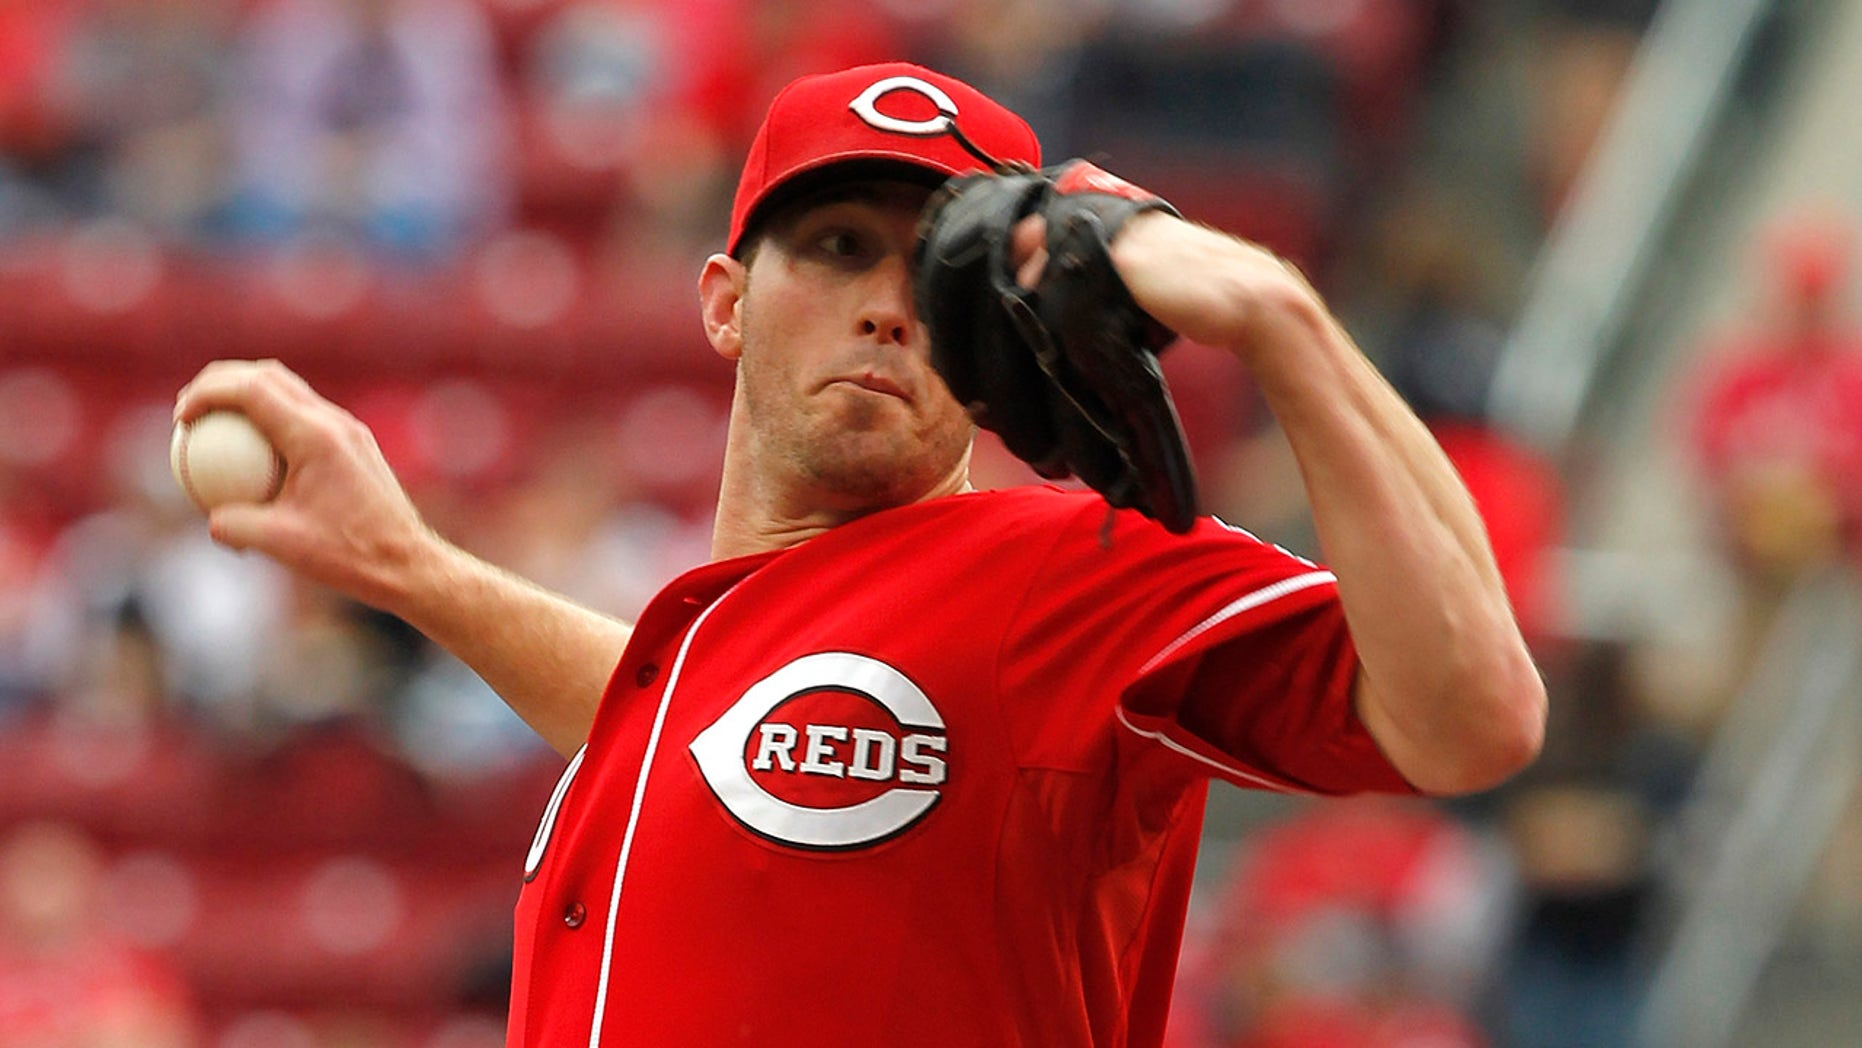 Cincinnati Reds starting pitcher Greg Reynolds (40) delivers a pitch to the Pittsburgh Pirates during the first inning of their MLB National League baseball game at Great American Ball Park in Cincinnati.